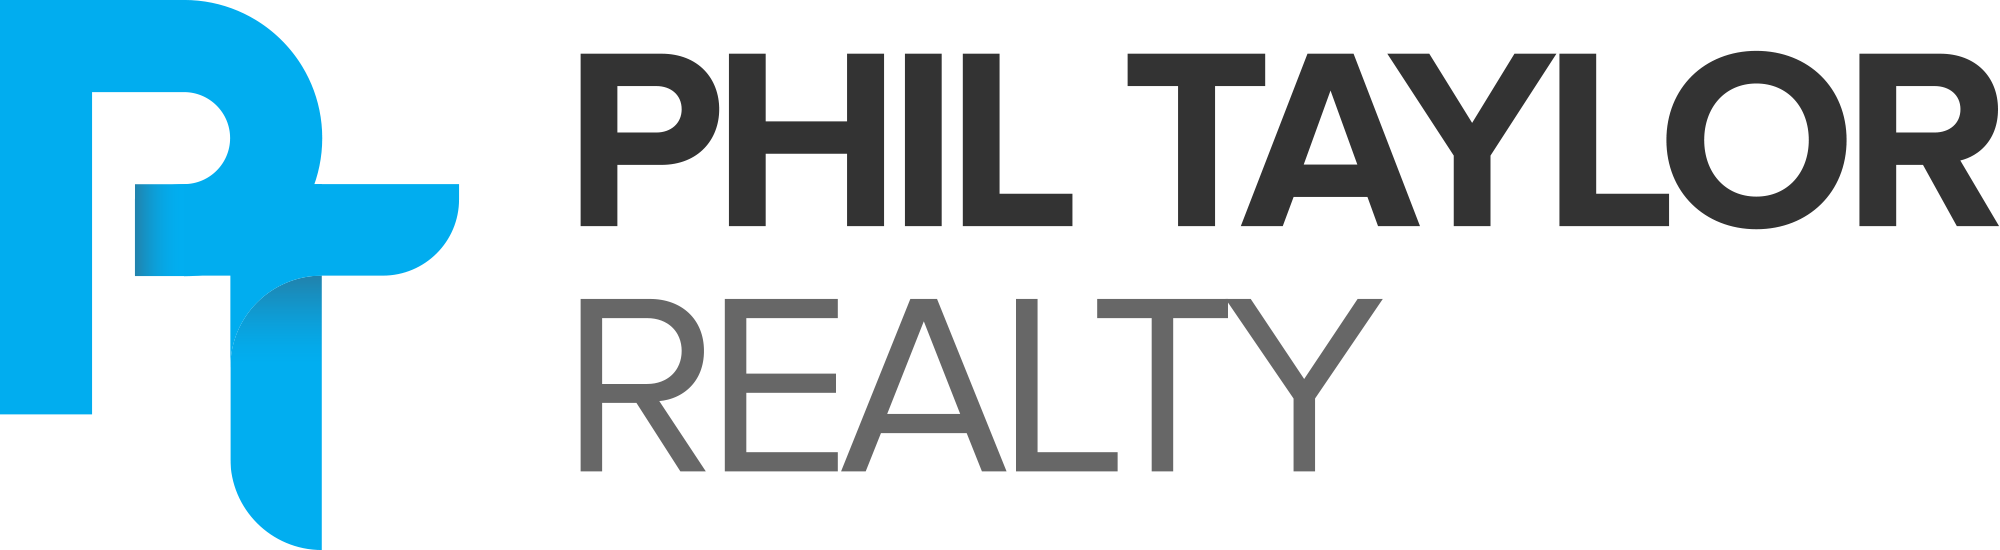 Phil Taylor Realty